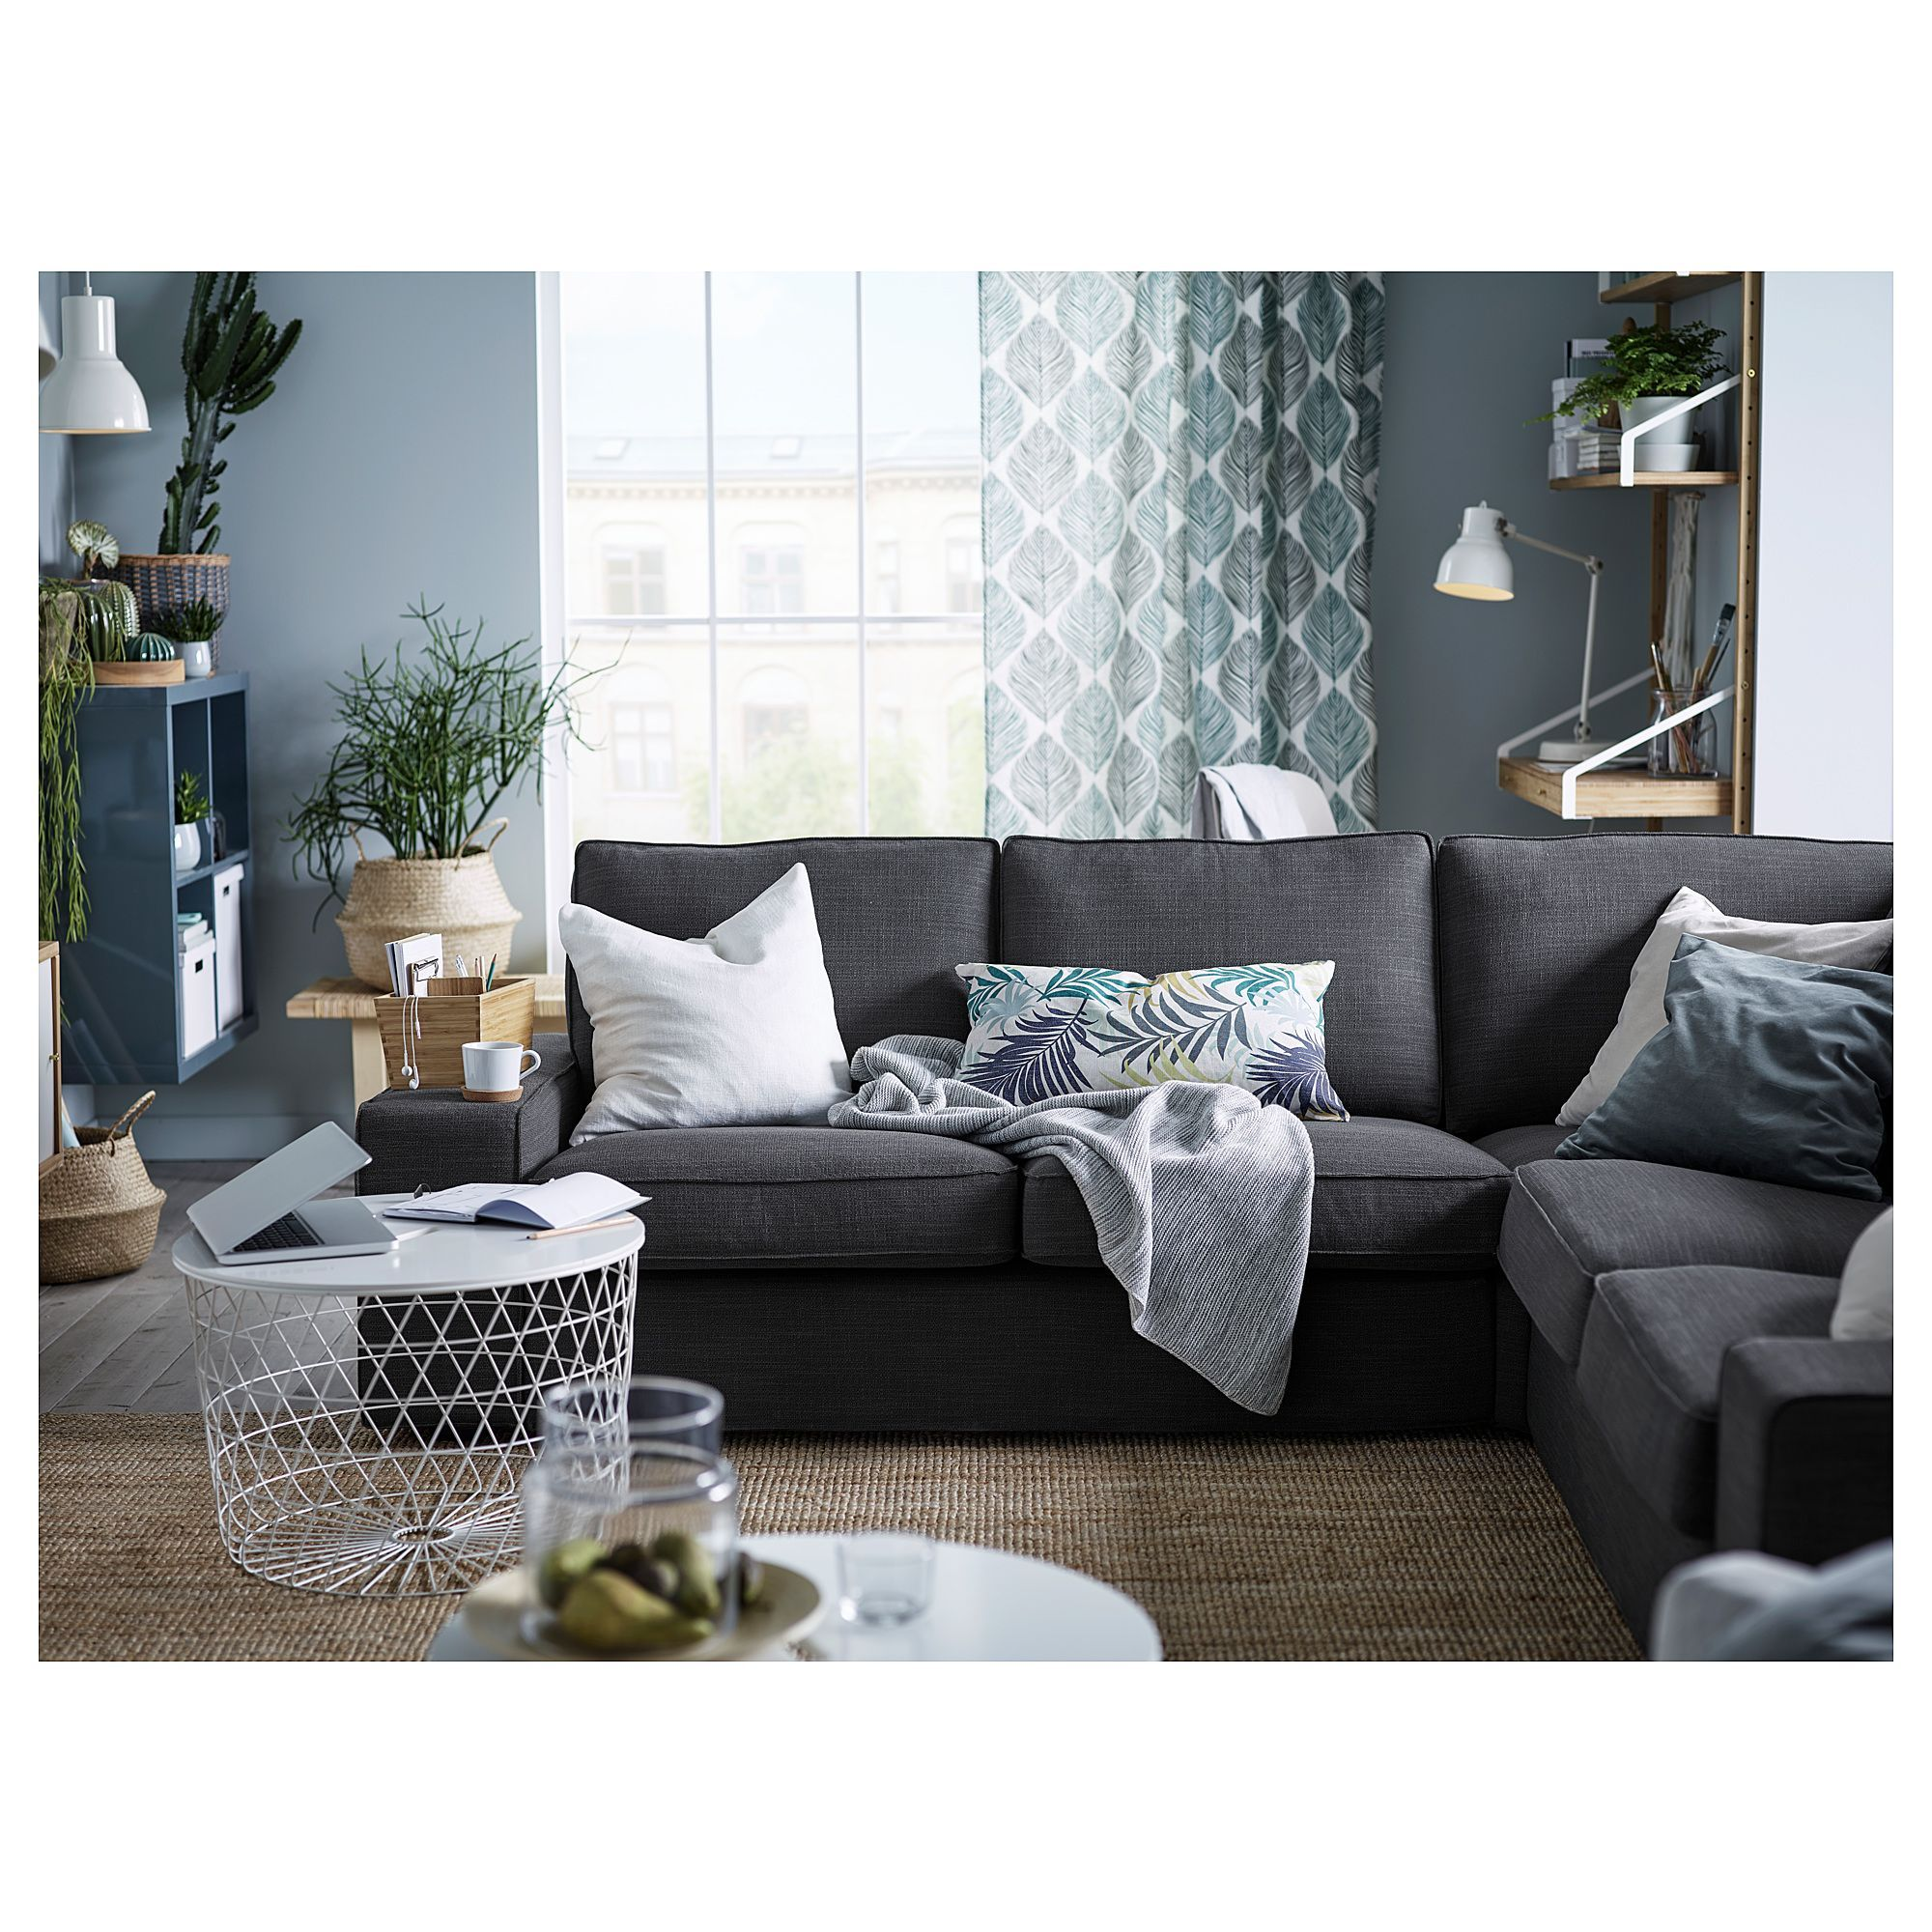 16 Enticing Wall Decorating Ideas For Your Living Room: Top 16 Best Accent Wall Ideas For Your Home (Dengan Gambar